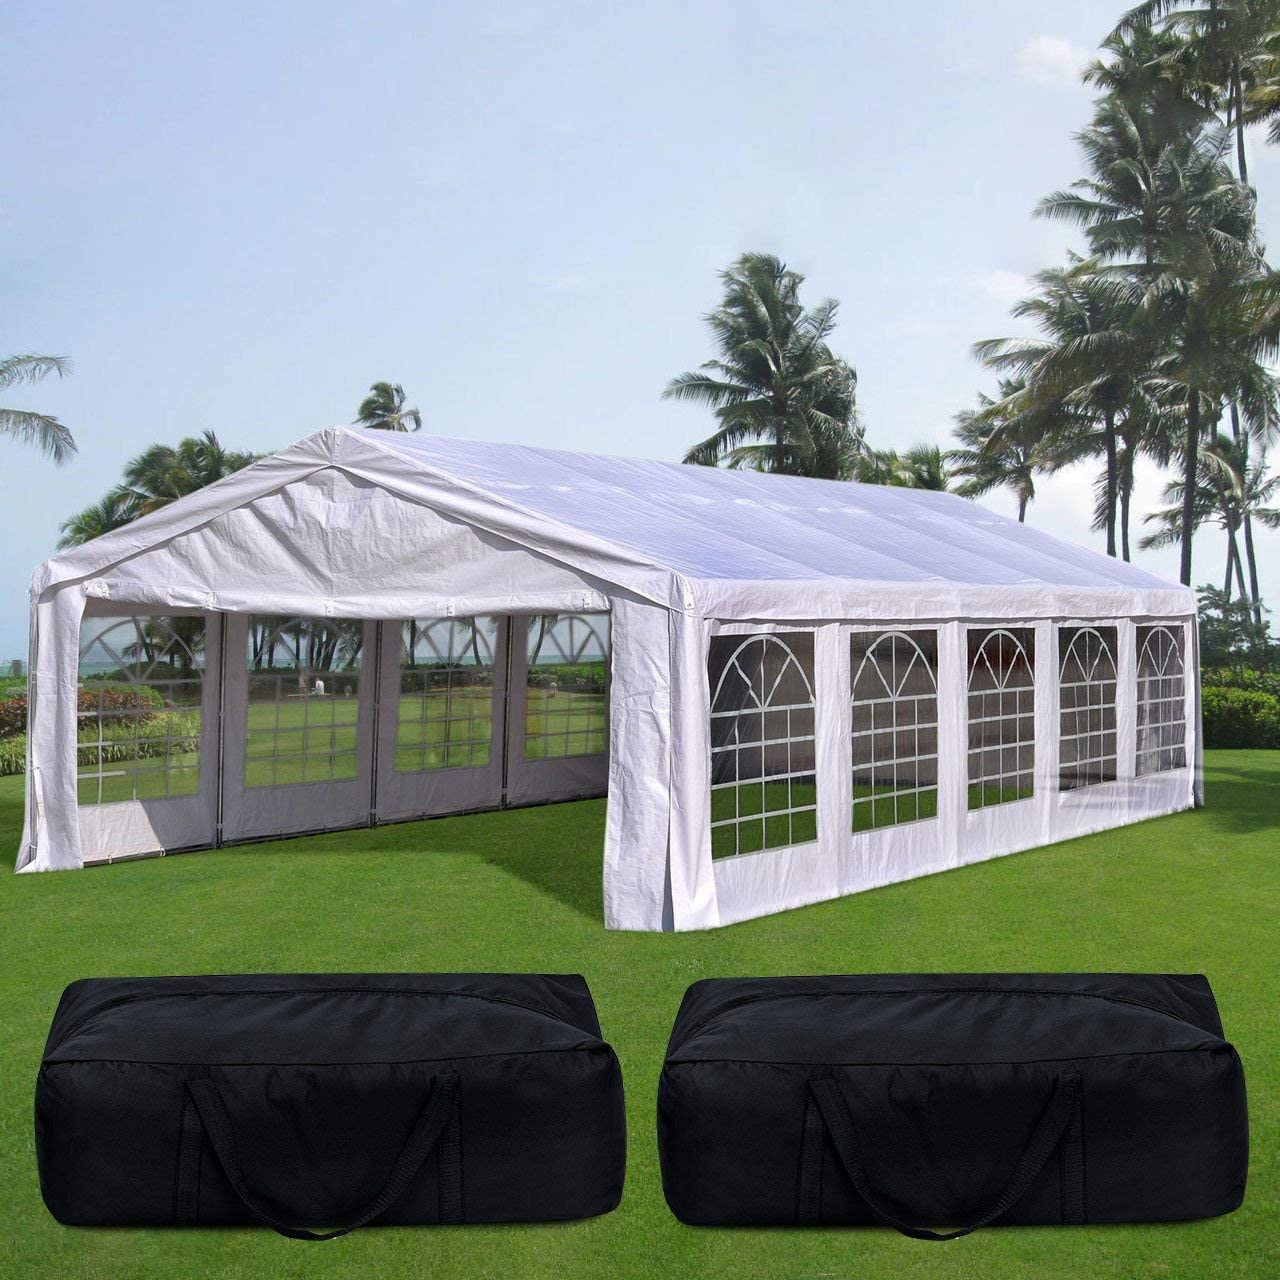 Quictent 20 x32 Upgraded Galvanized Heavy Duty Gazebo Party Tent Wedding Canopy Carport Shelter with Carry Bags